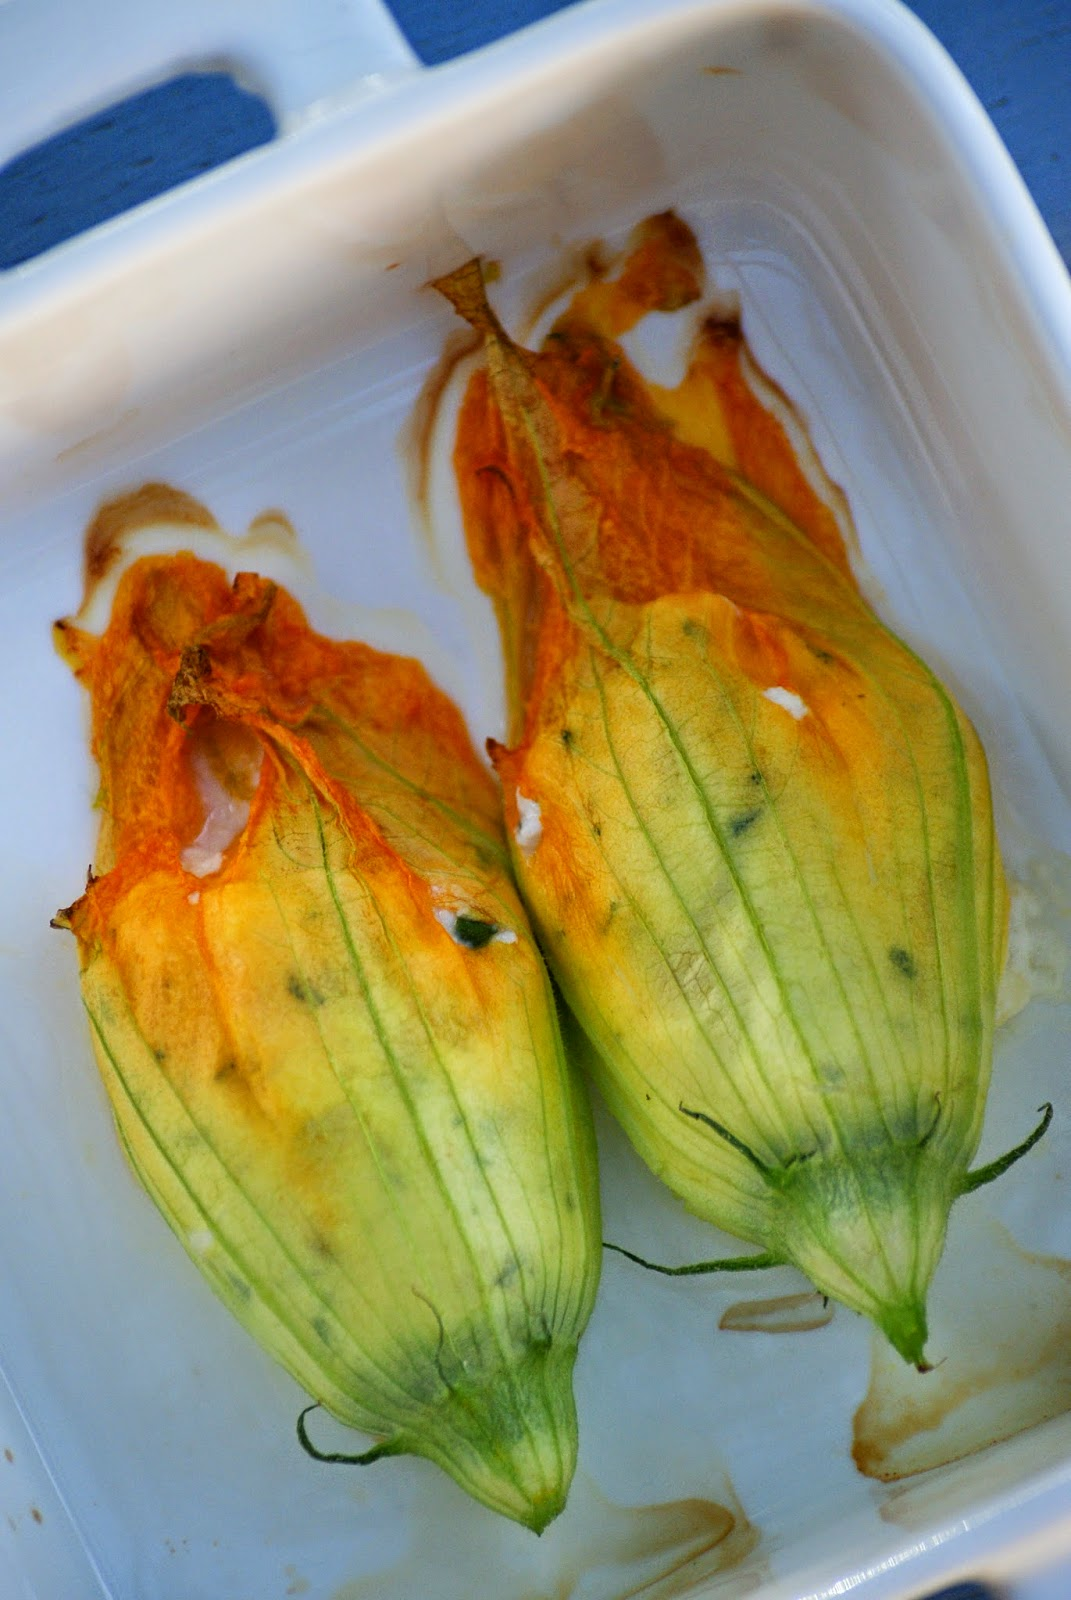 Baked Zucchini Flowers Stuffed with Ricotta and Herbs